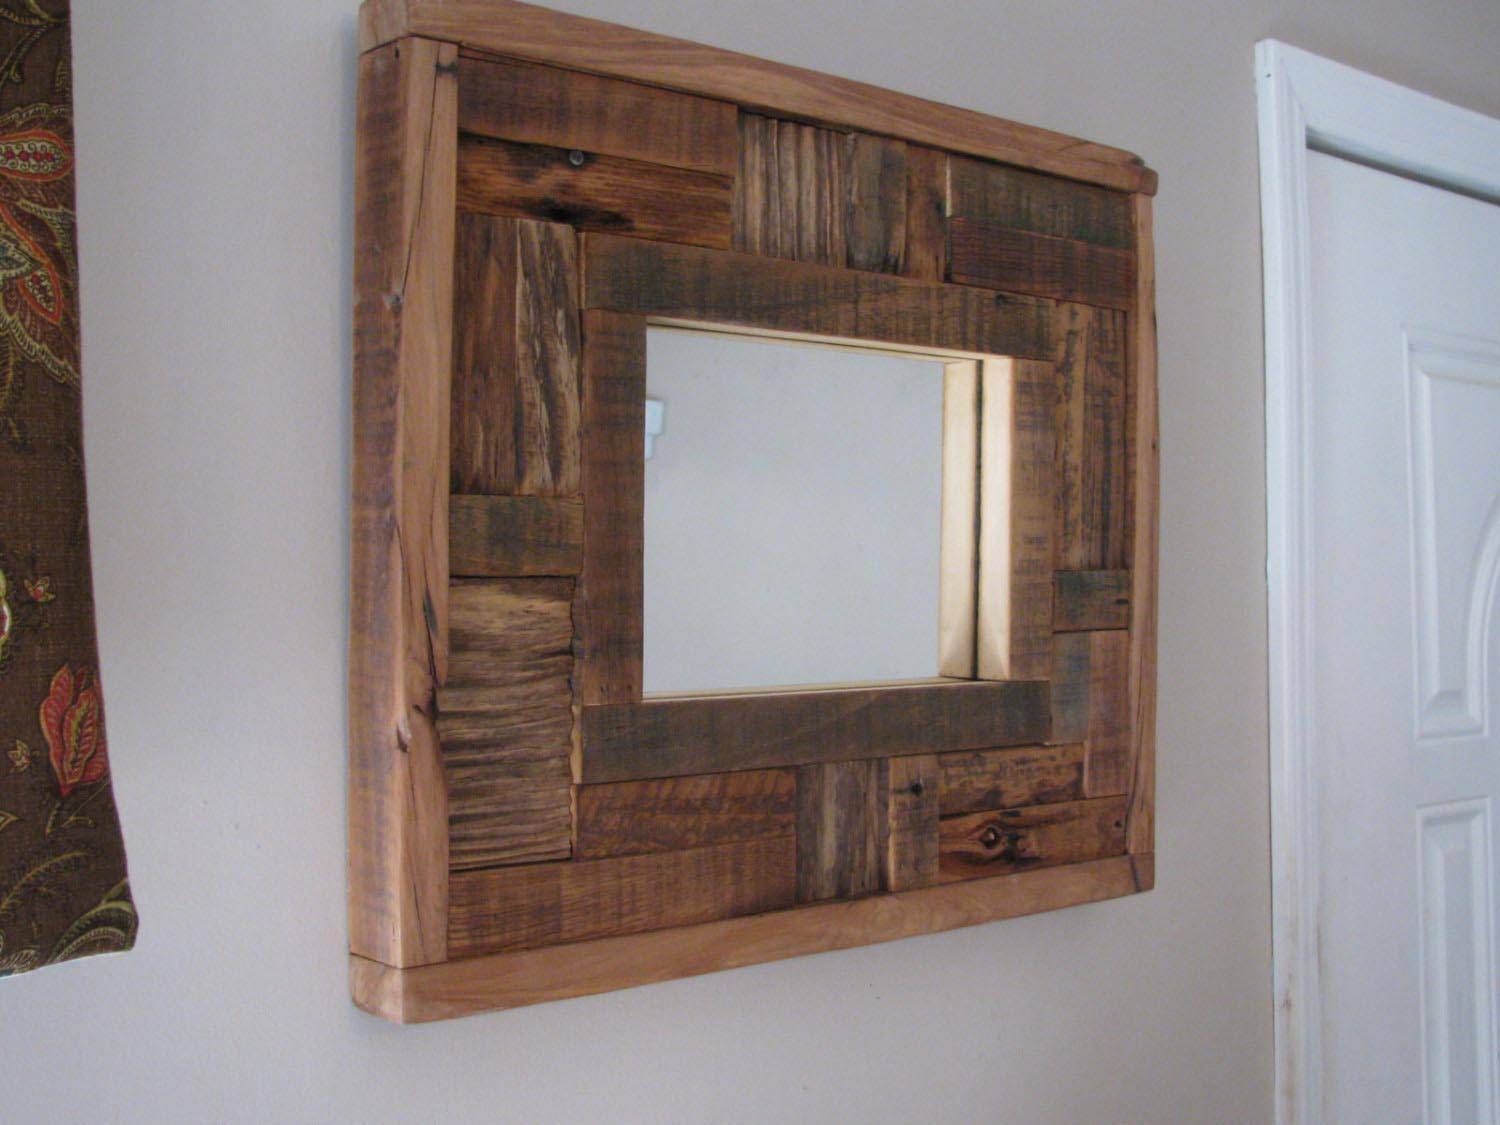 Beech wood framed mirrors best decor things for Wood framed mirrors